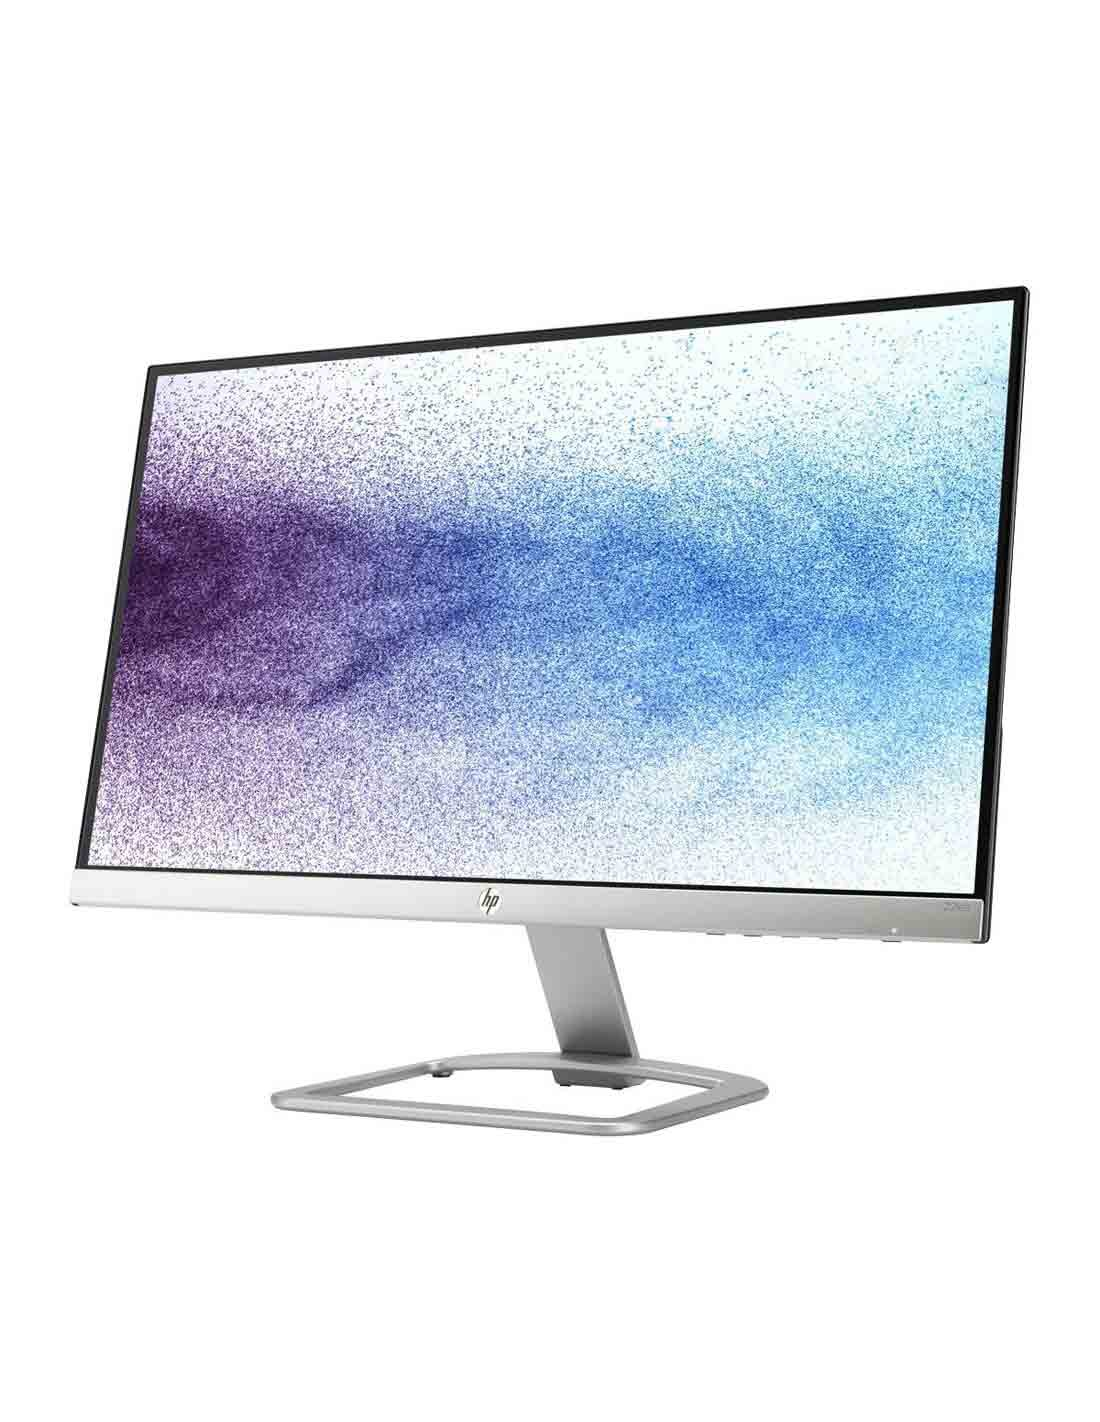 """HP 22es 54.61 cm (21.5"""") Monitor at the cheapest price and fast free delivery in Dubai"""